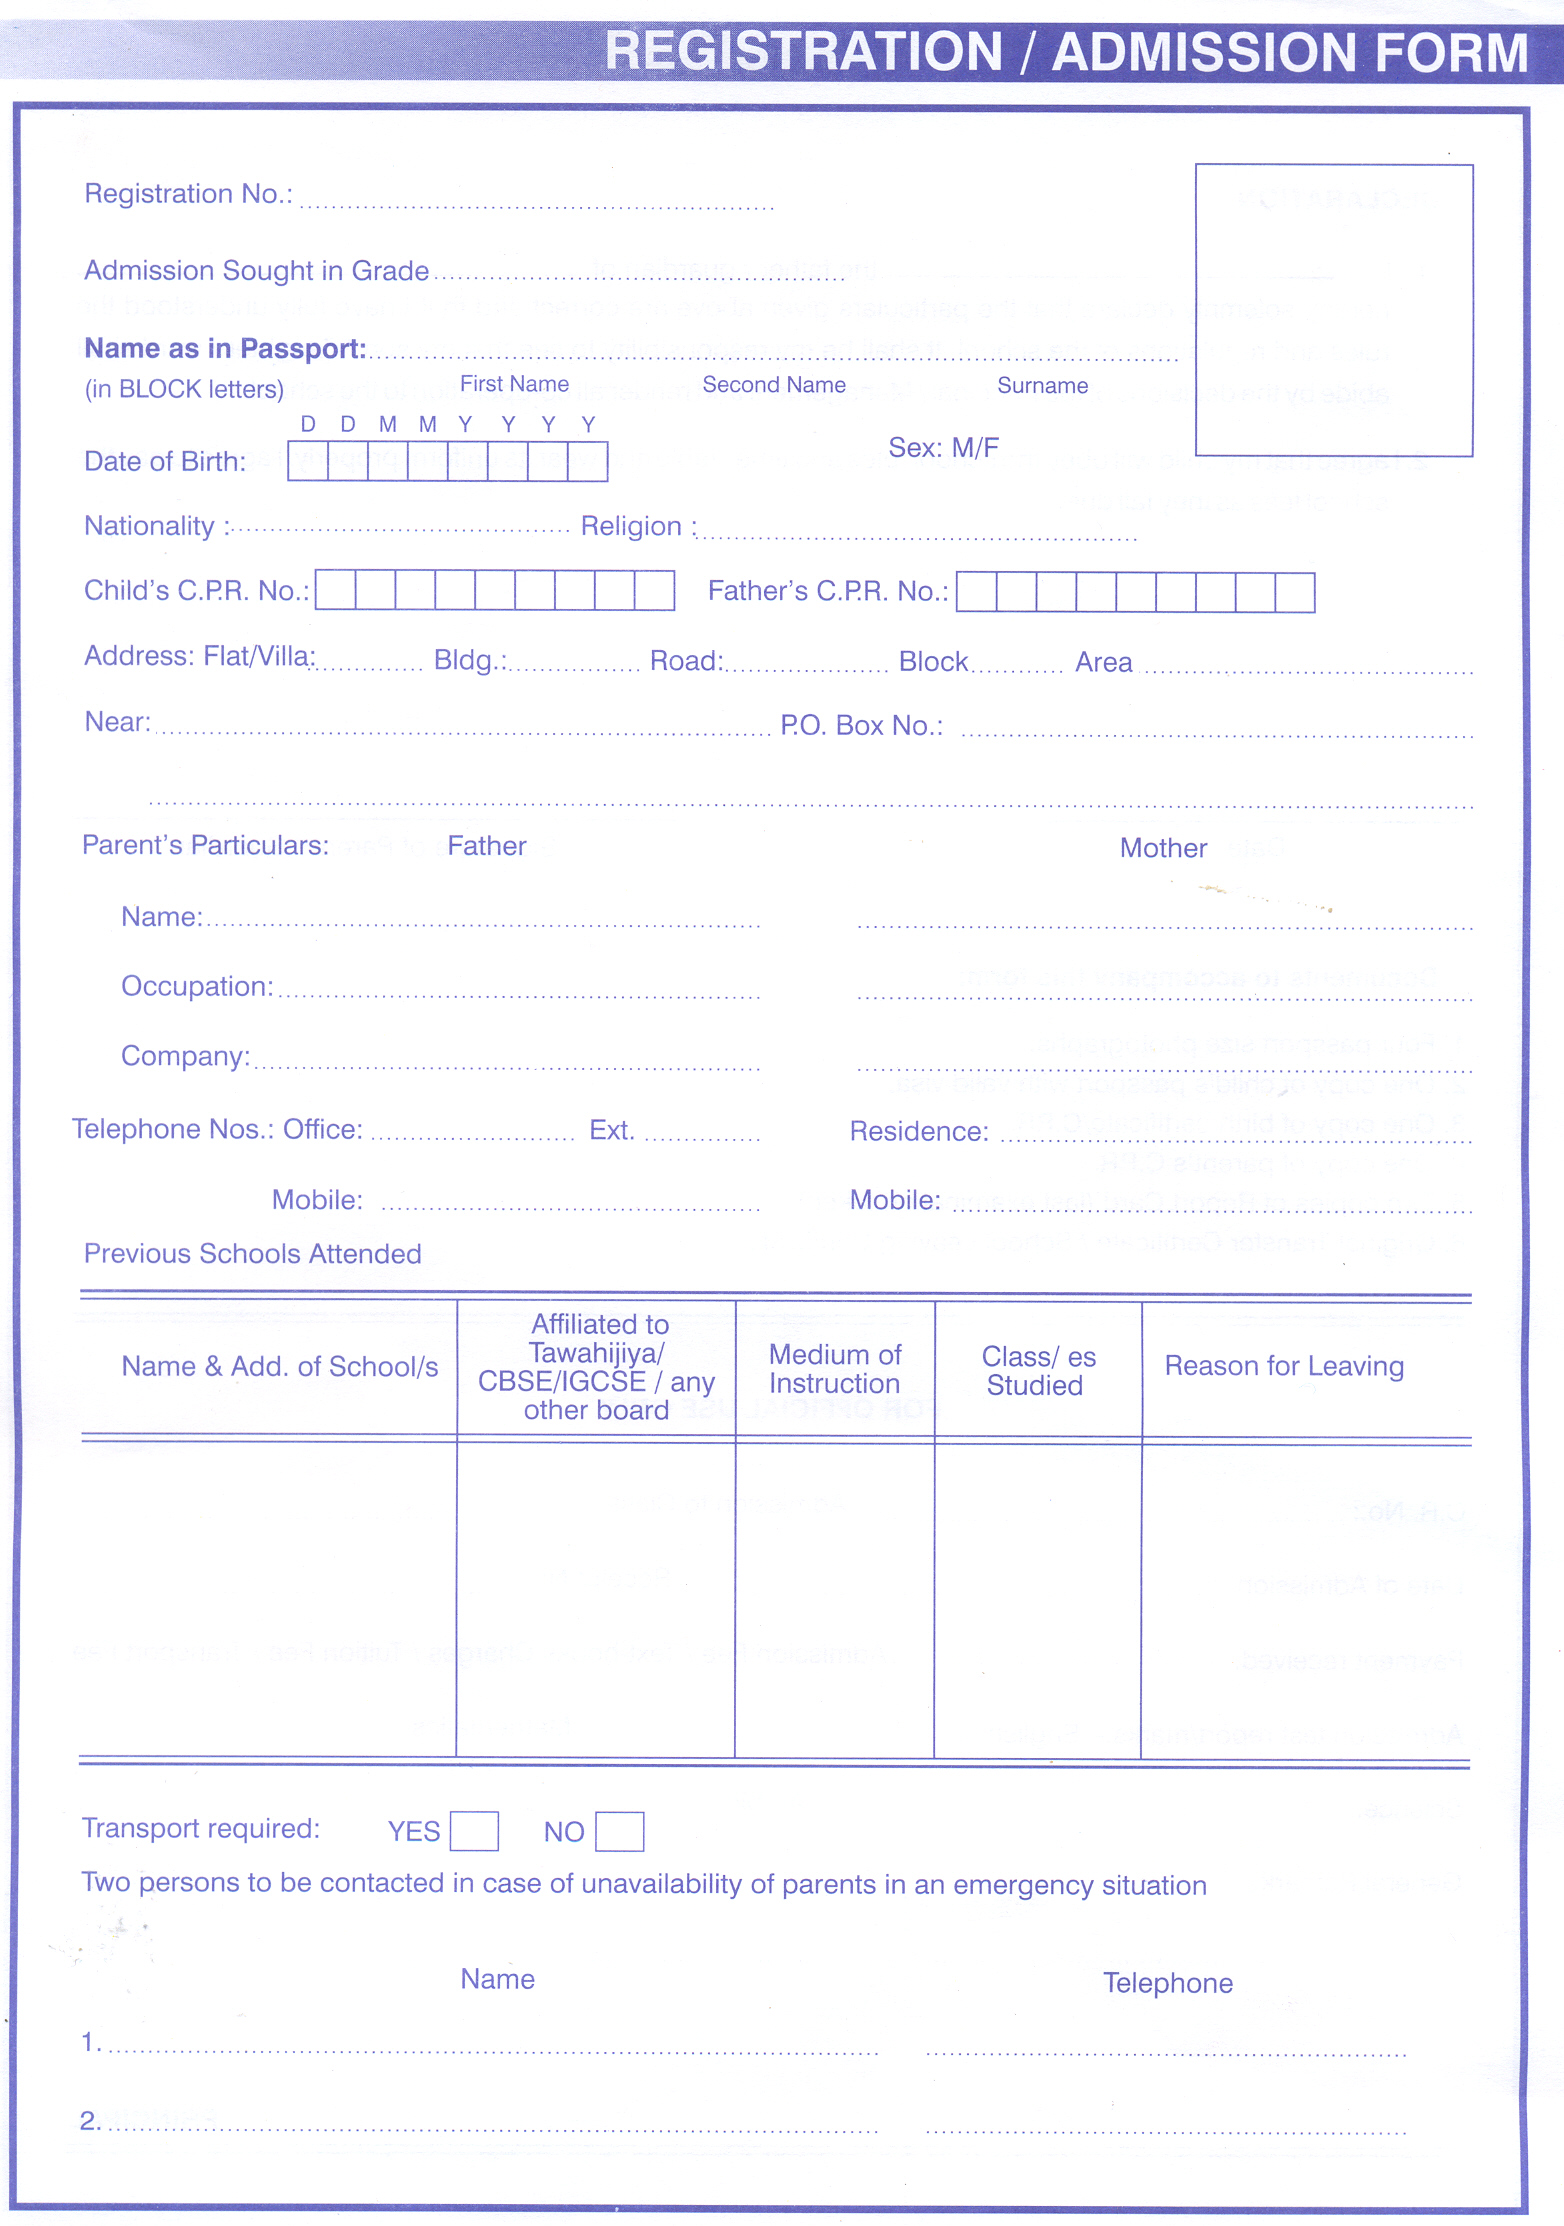 AL MAHD DAY BOARDING Application Form For Admission on request information form, application to graduate, graduation application, general information form, add/drop form, letters of recommendation form, admissions department, application form template.pdf, course evaluation form, housing application form, application form format, withdrawal form, application form online, registration form, application for graduation form, student application form, scholarship application form, contact us form, college job application form, advanced diploma in gis applications, transcript request form, high school transcript request form, application for friends with benefits form, application for transfer credit,